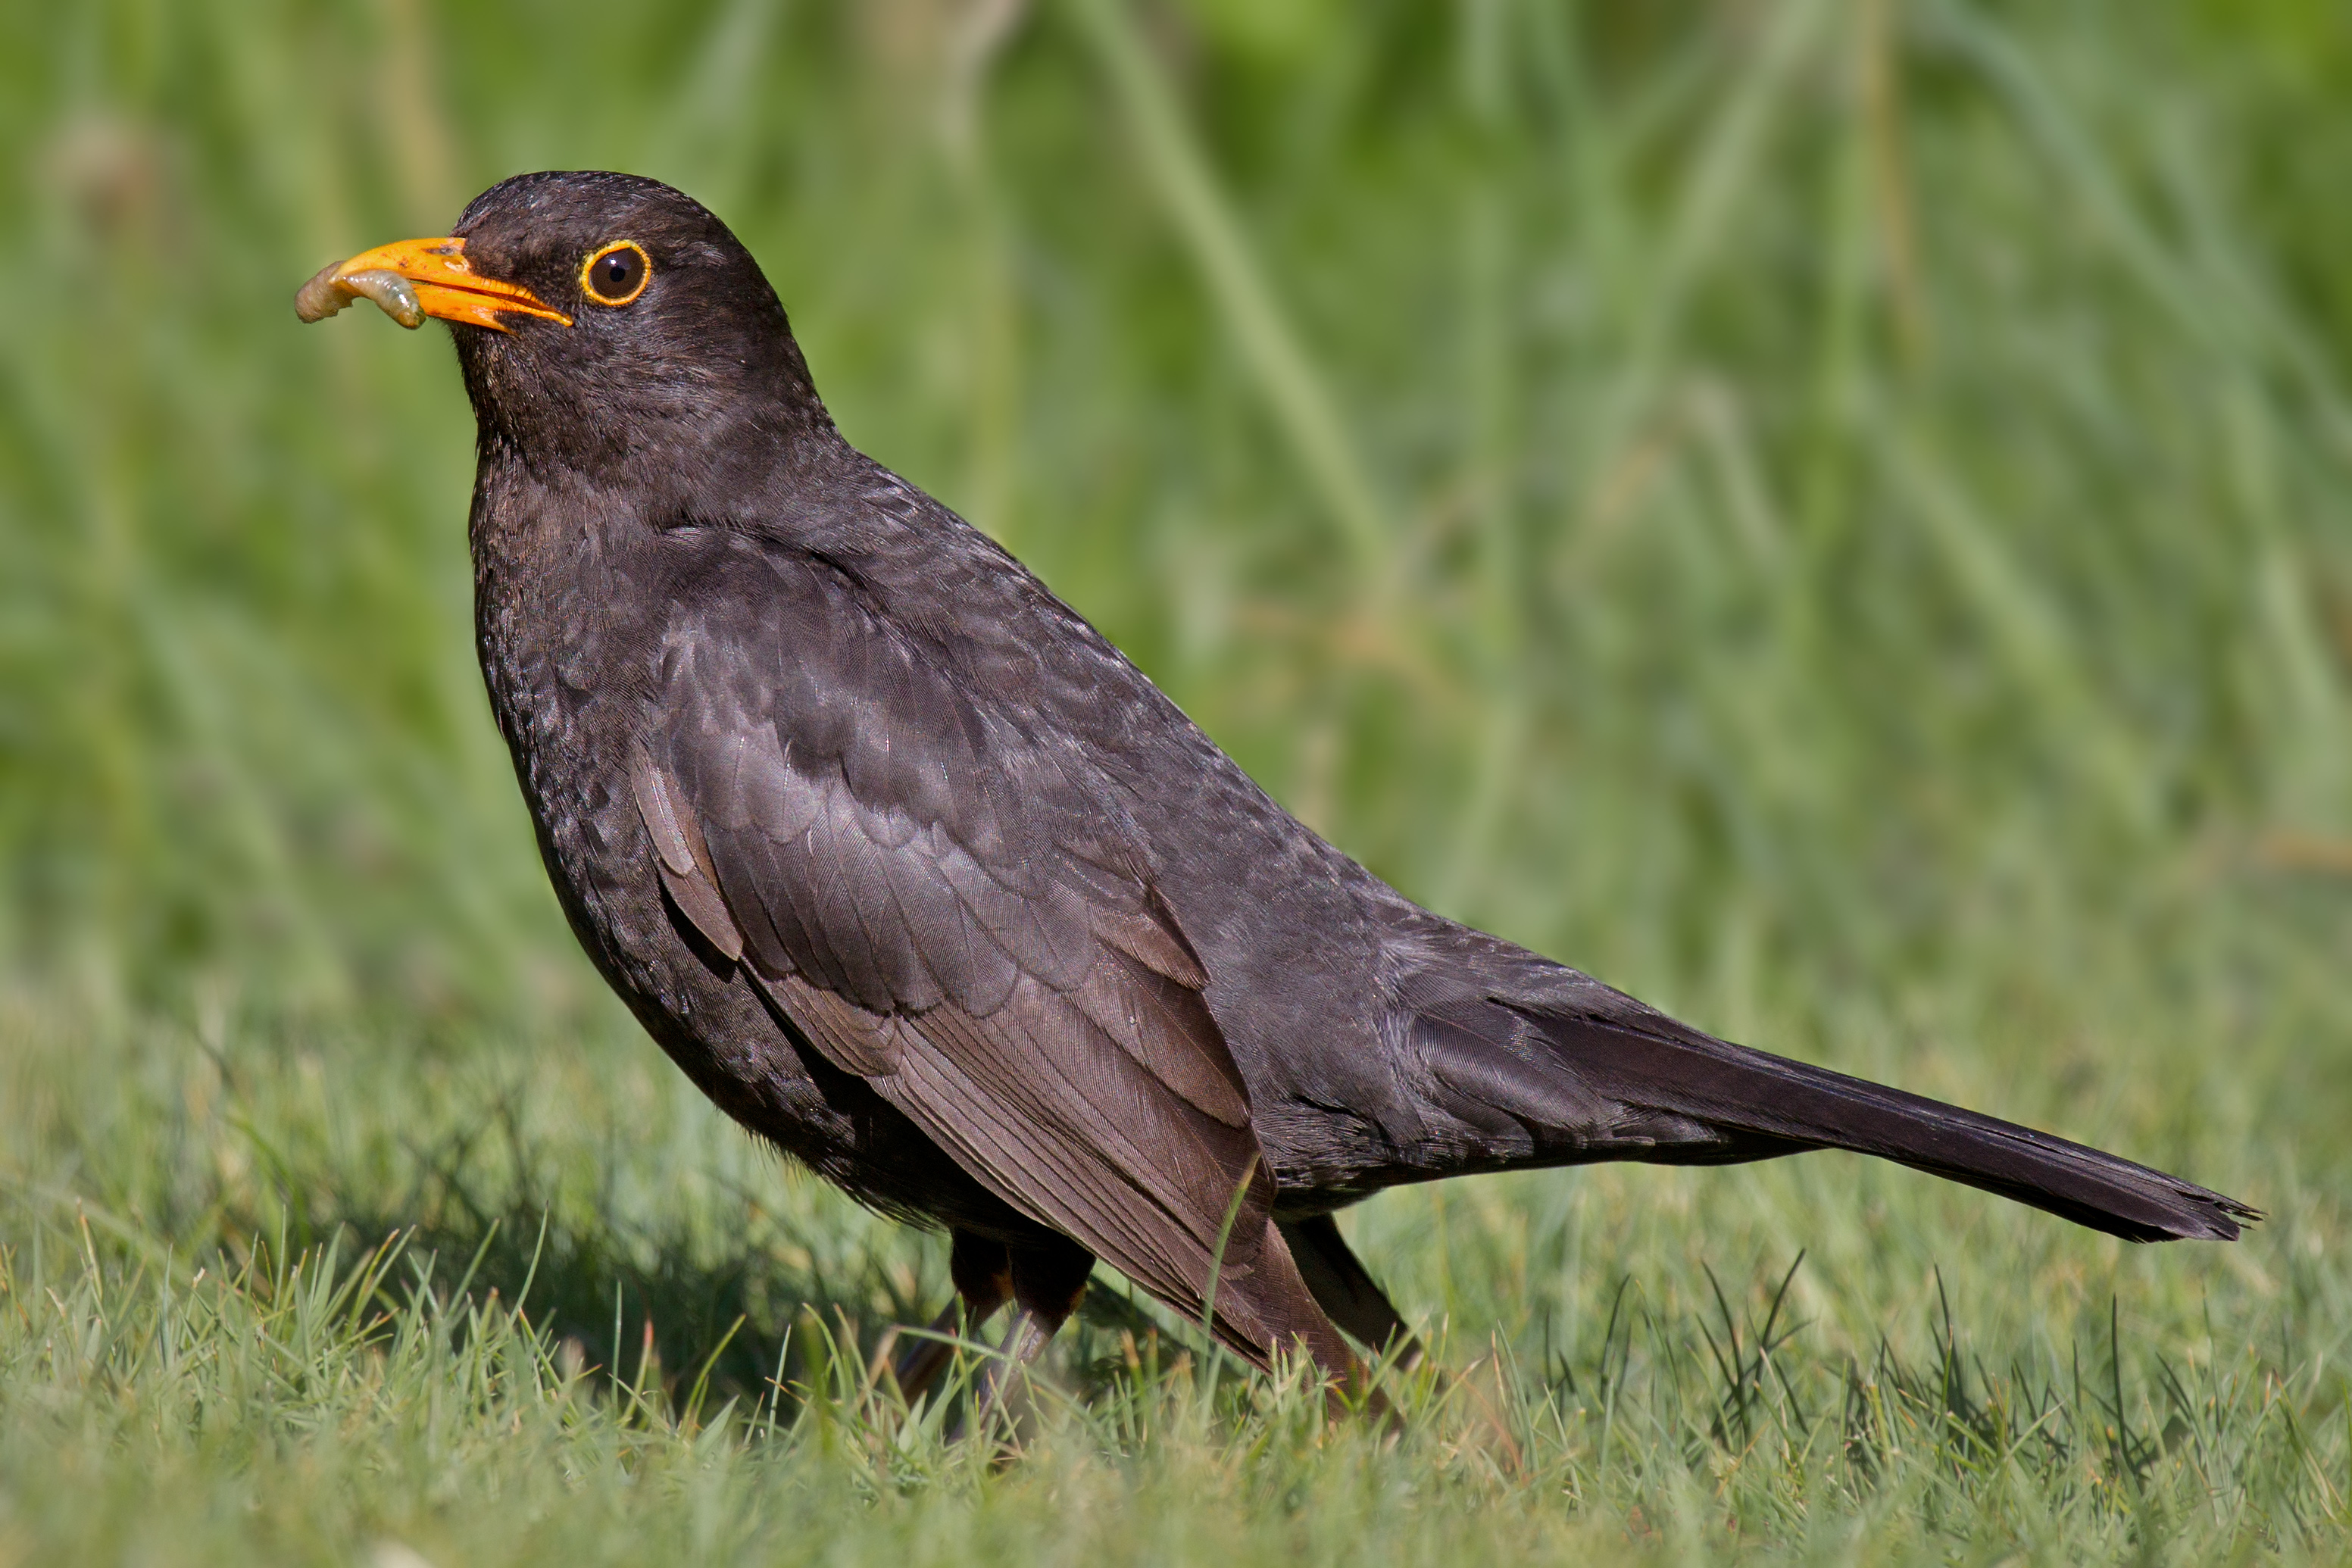 Common Blackbird.jpg © Andreas Trepte (Wikimedia Commons - CC-BY-SA-2.5)